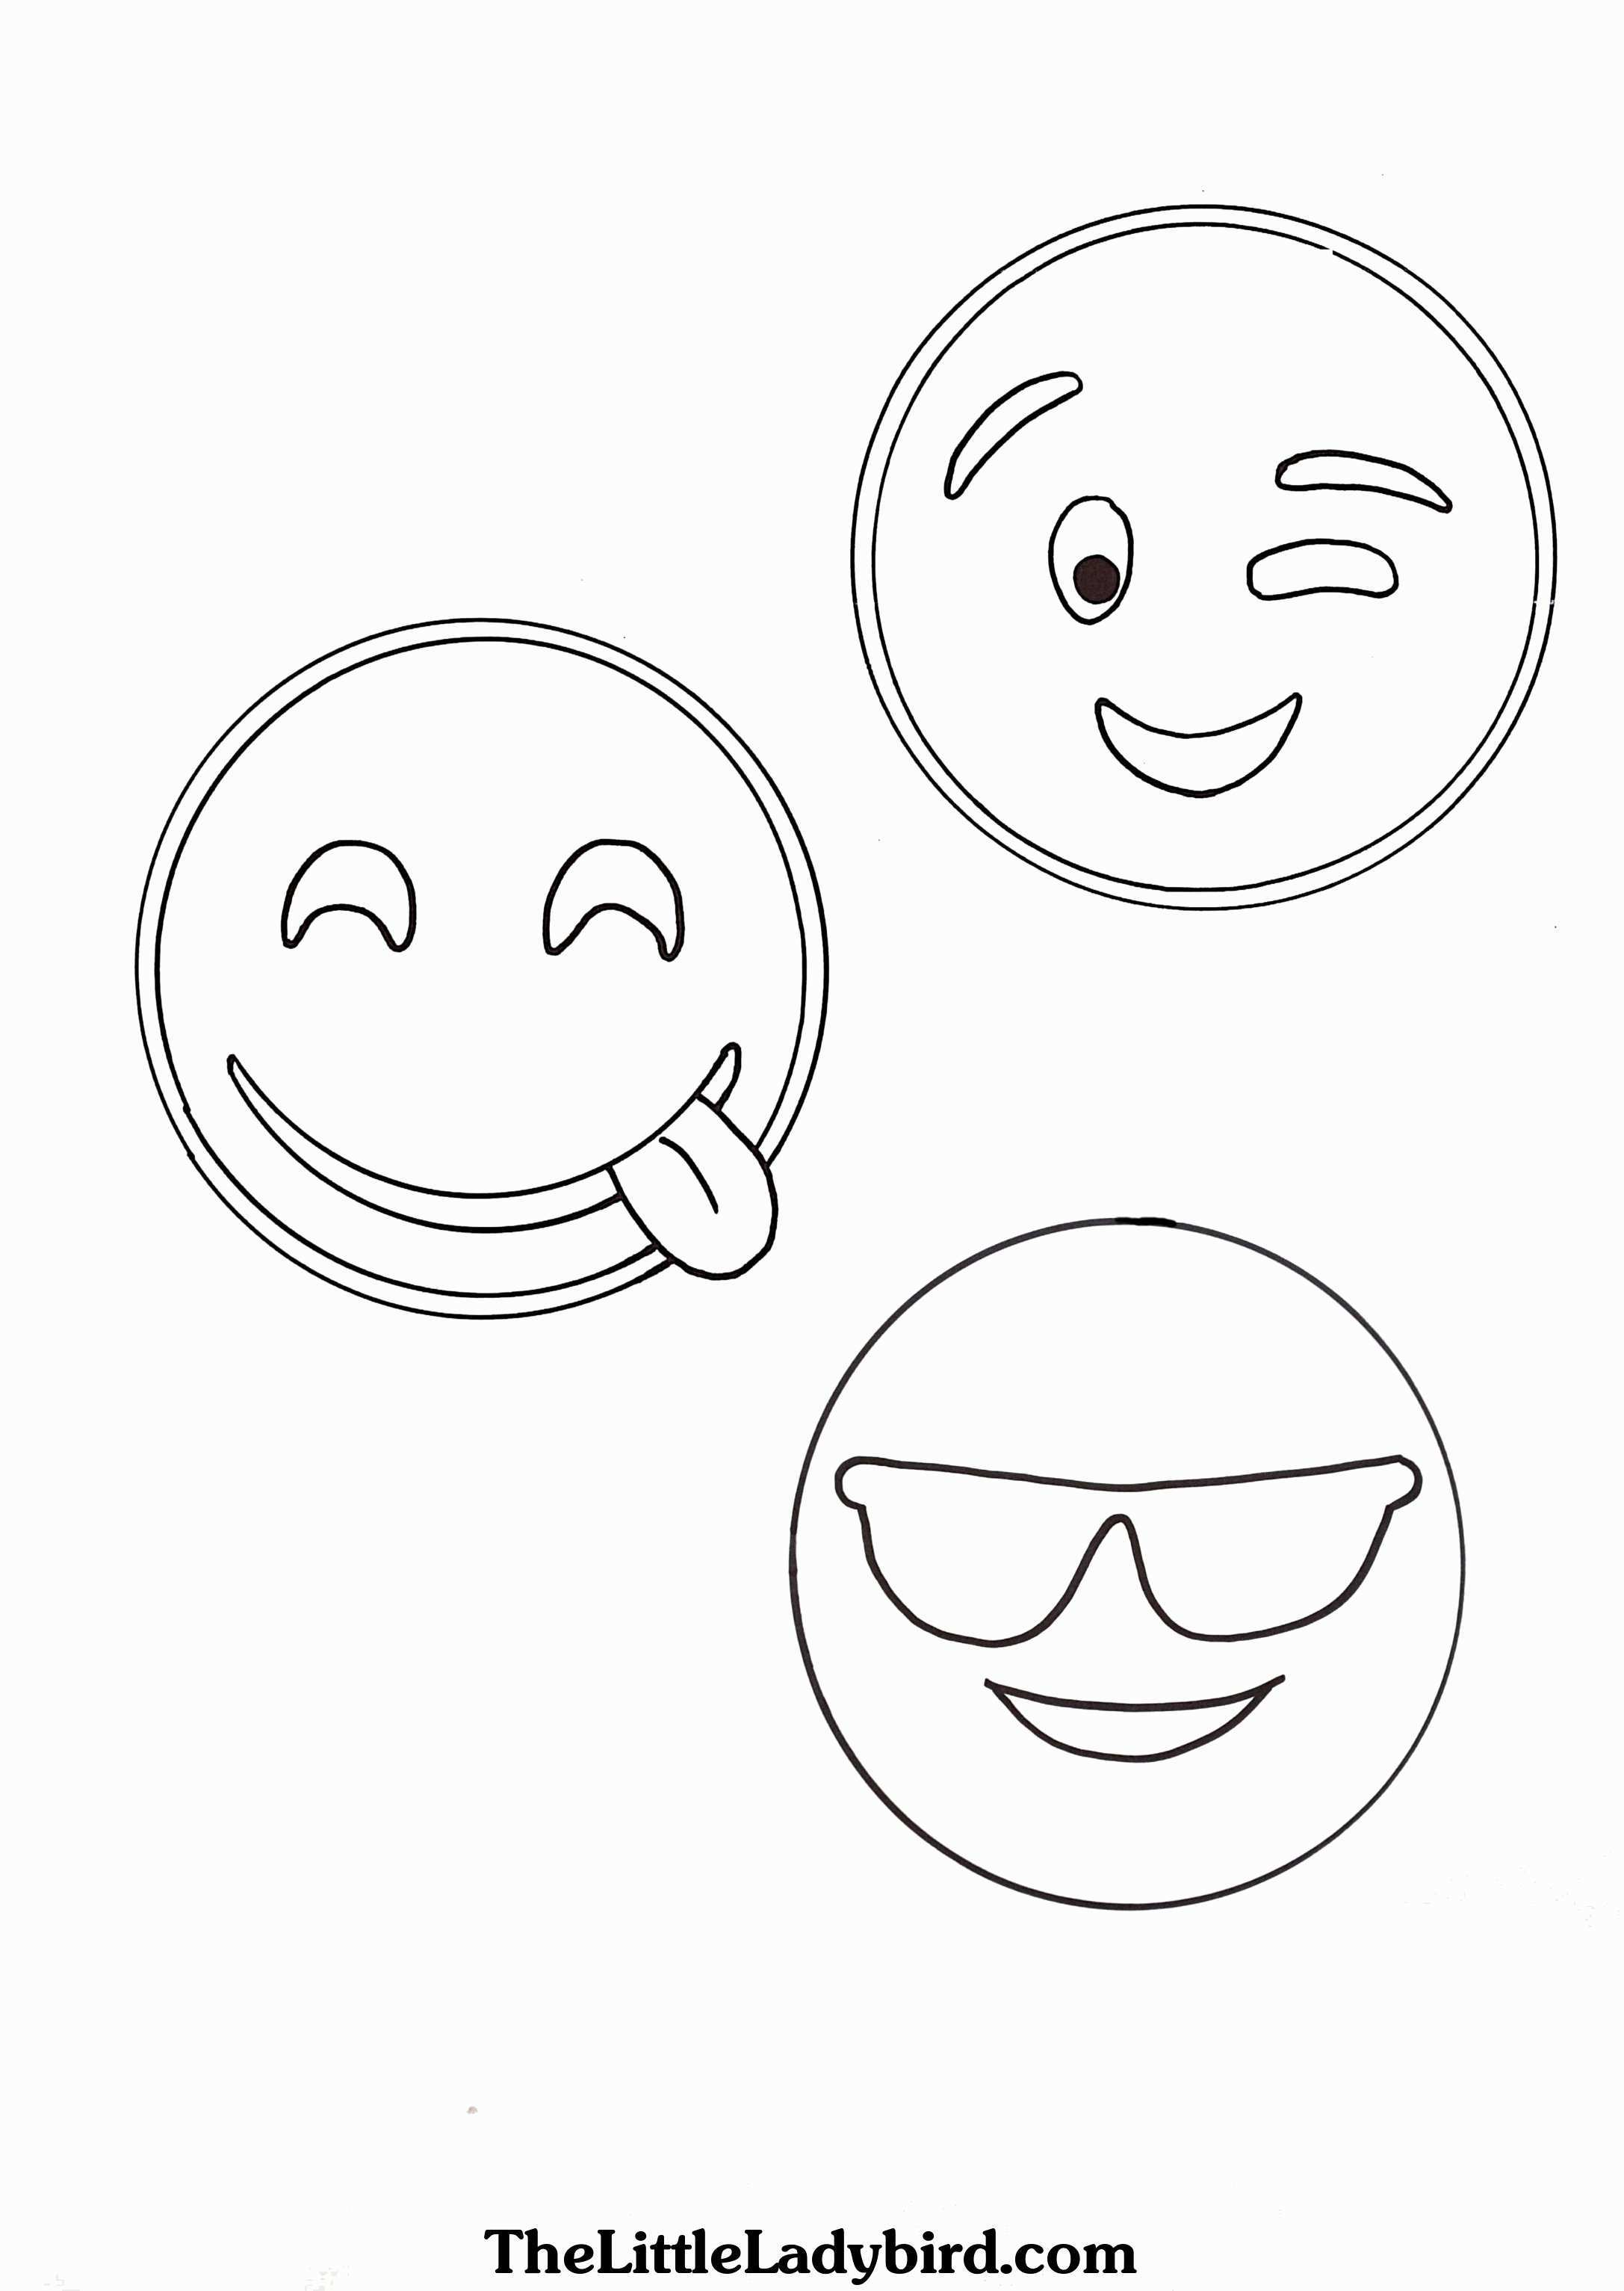 Santa Face Coloring Sheet With Page Luxury Emojis Pages Printable Free